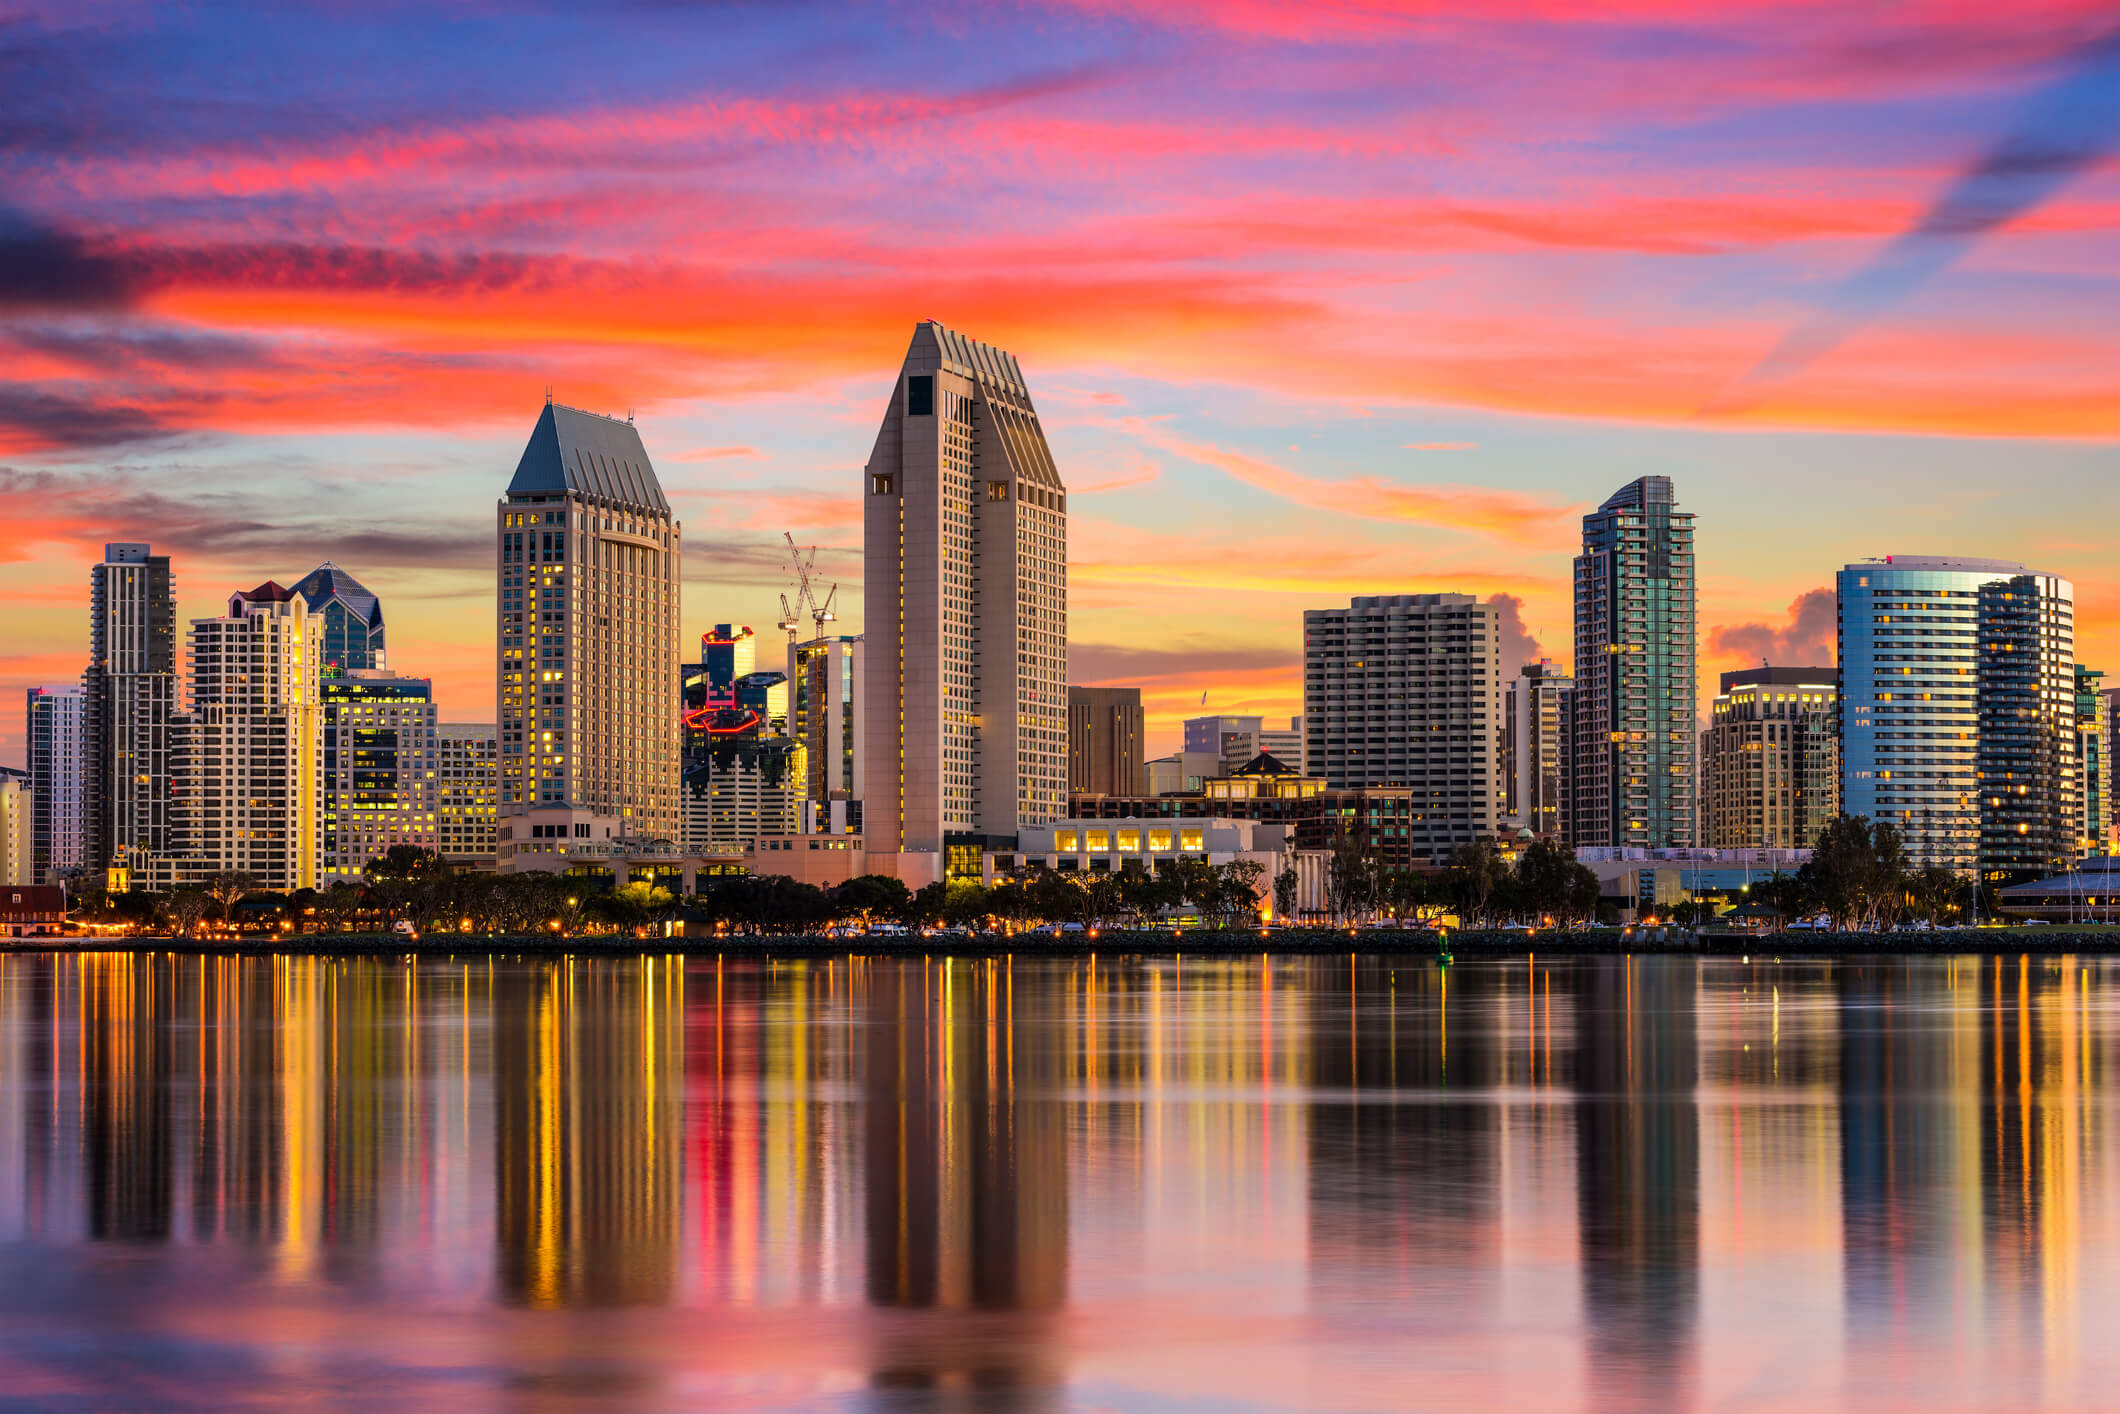 This is a photo of the San Diego skyline